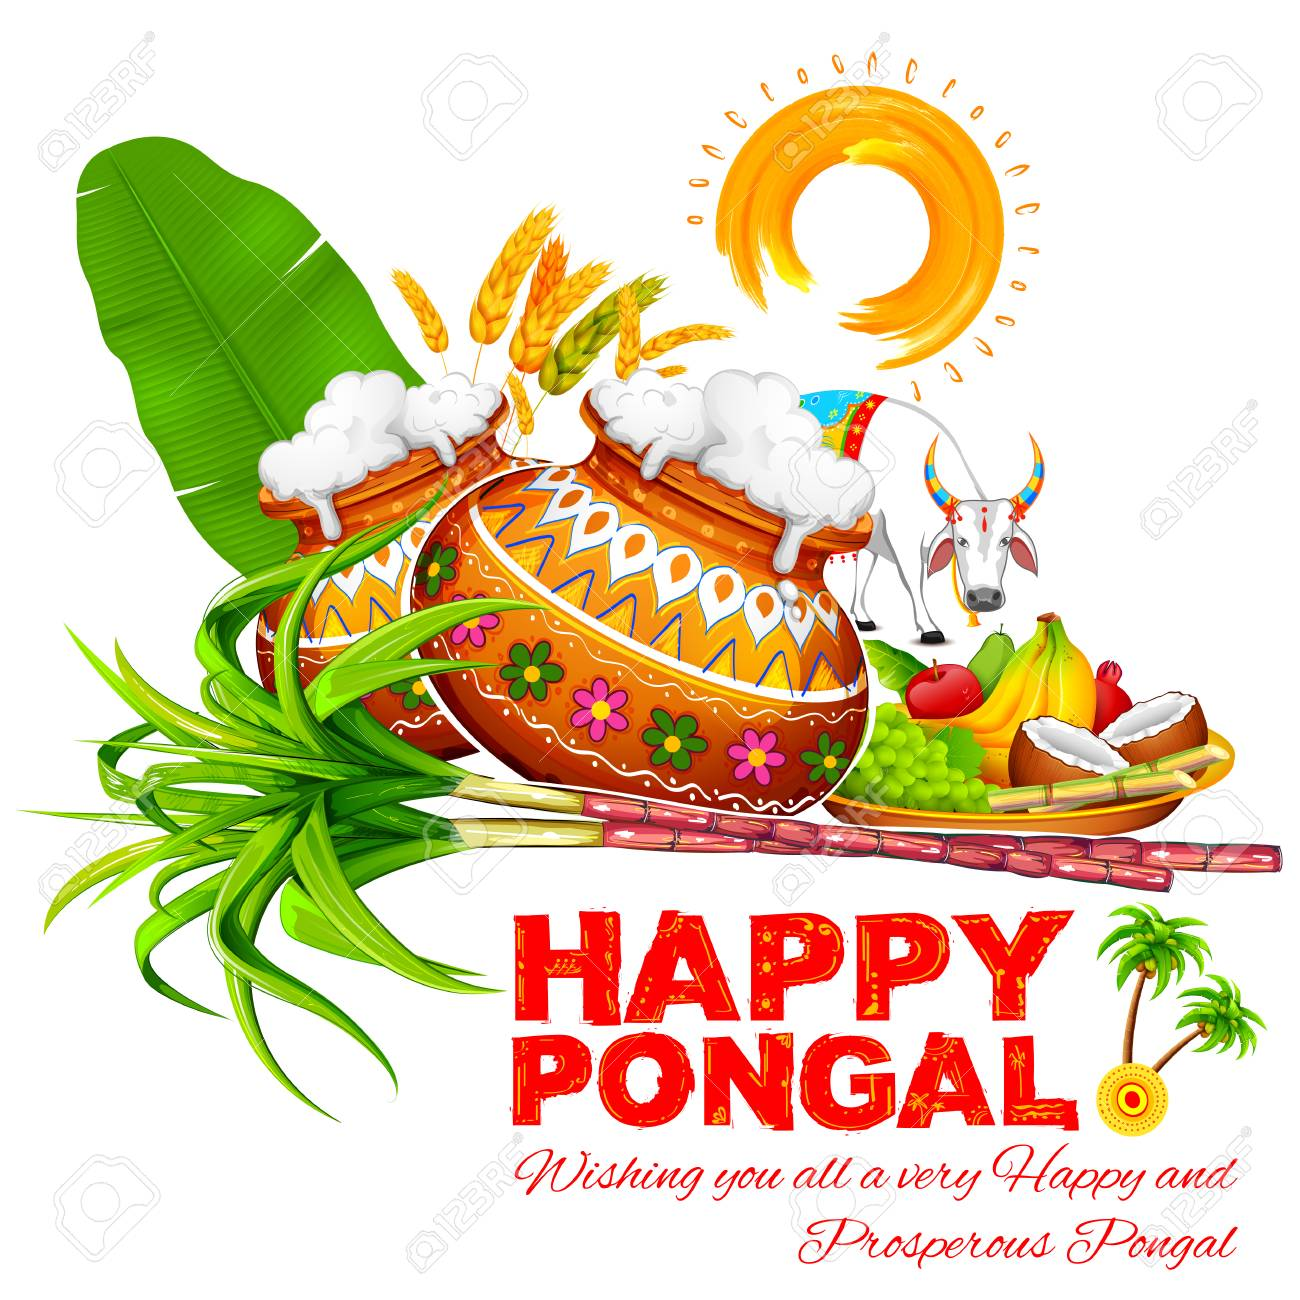 Illustration of happy pongal greeting background royalty free illustration of happy pongal greeting background stock vector 68056261 m4hsunfo